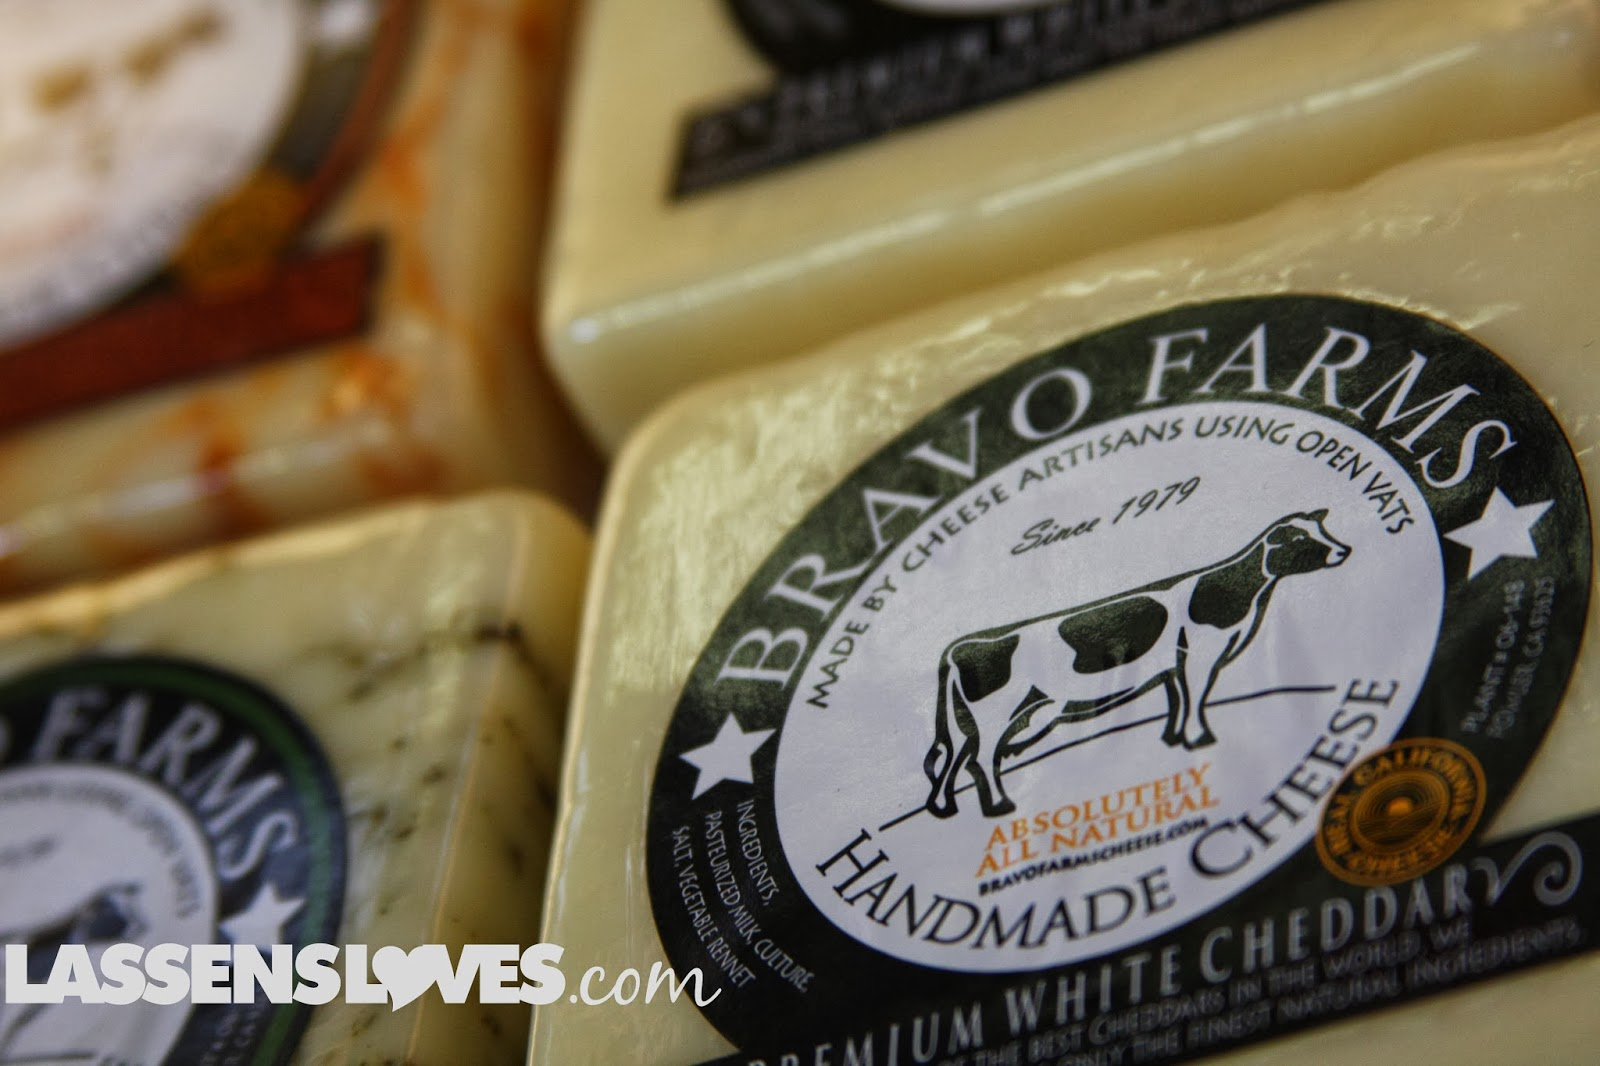 Organic+cheese, Bravo+Farms+Cheese, Bravo+Farms